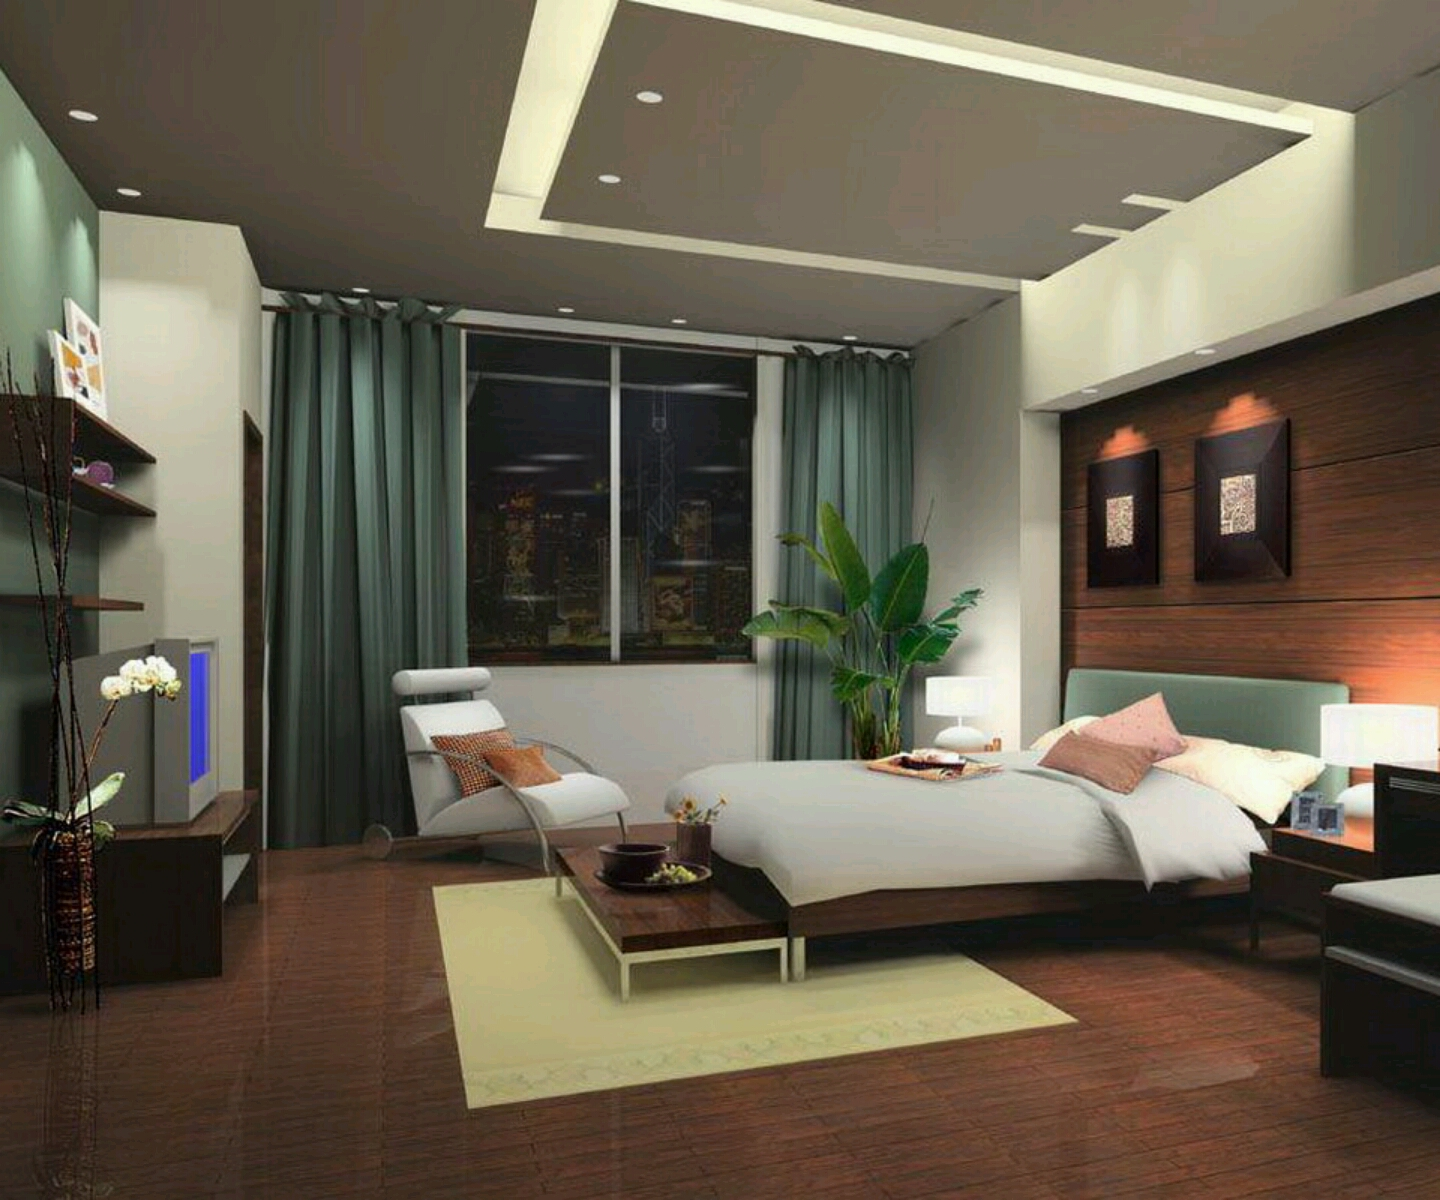 New home designs latest modern bedrooms designs best ideas Modern bedroom designs 2012